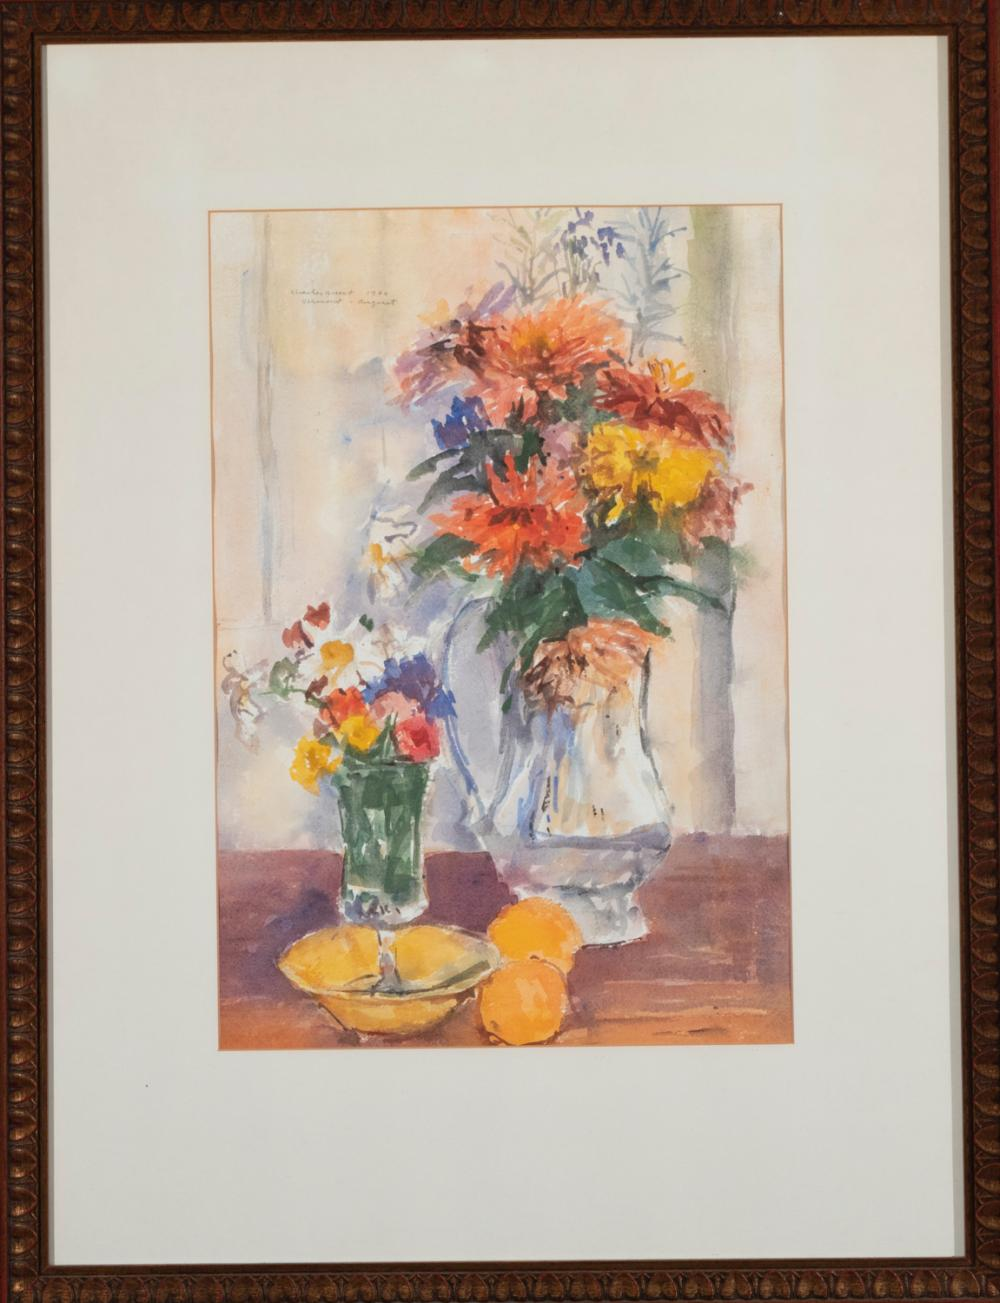 Charles Quest, American (1904-1993), Floral Still Life, 1964, watercolor on paper, 19 x 13 inches (sight)